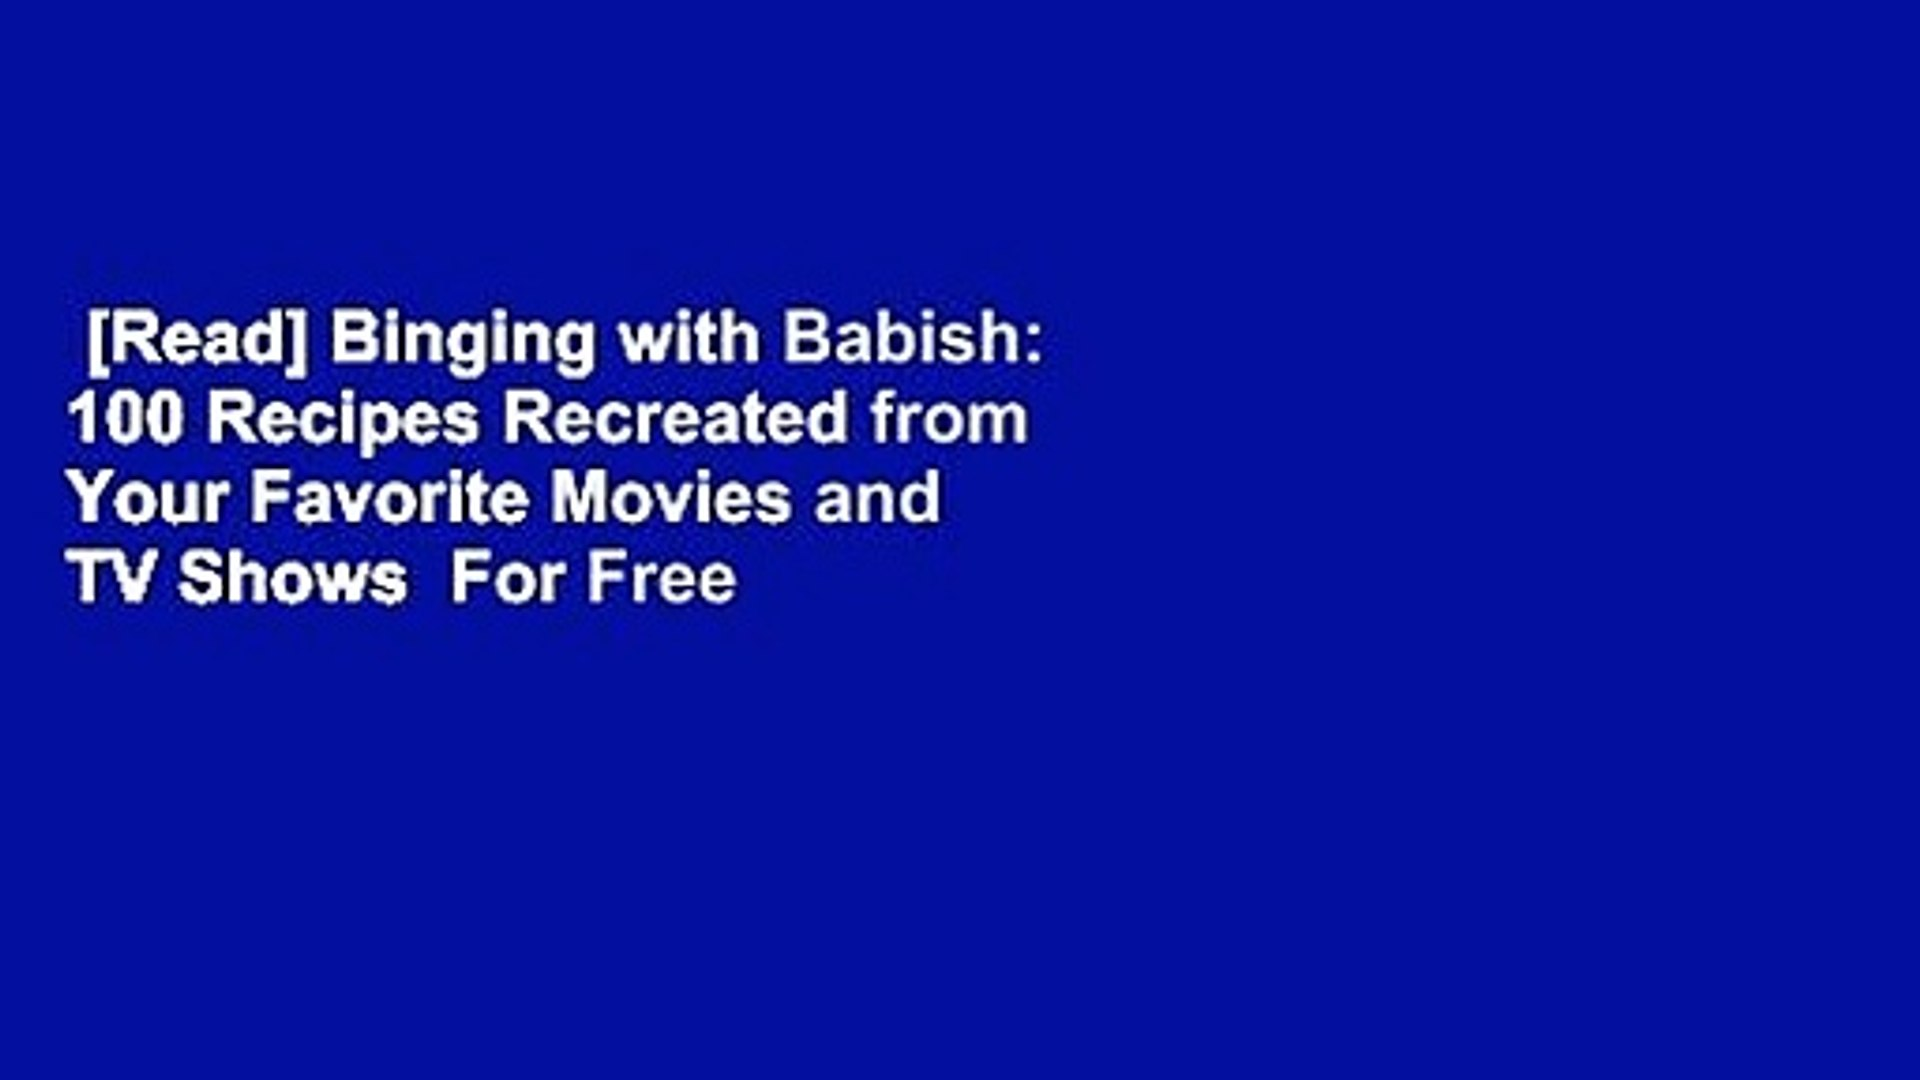 [Read] Binging with Babish: 100 Recipes Recreated from Your Favorite Movies and TV Shows  For Free